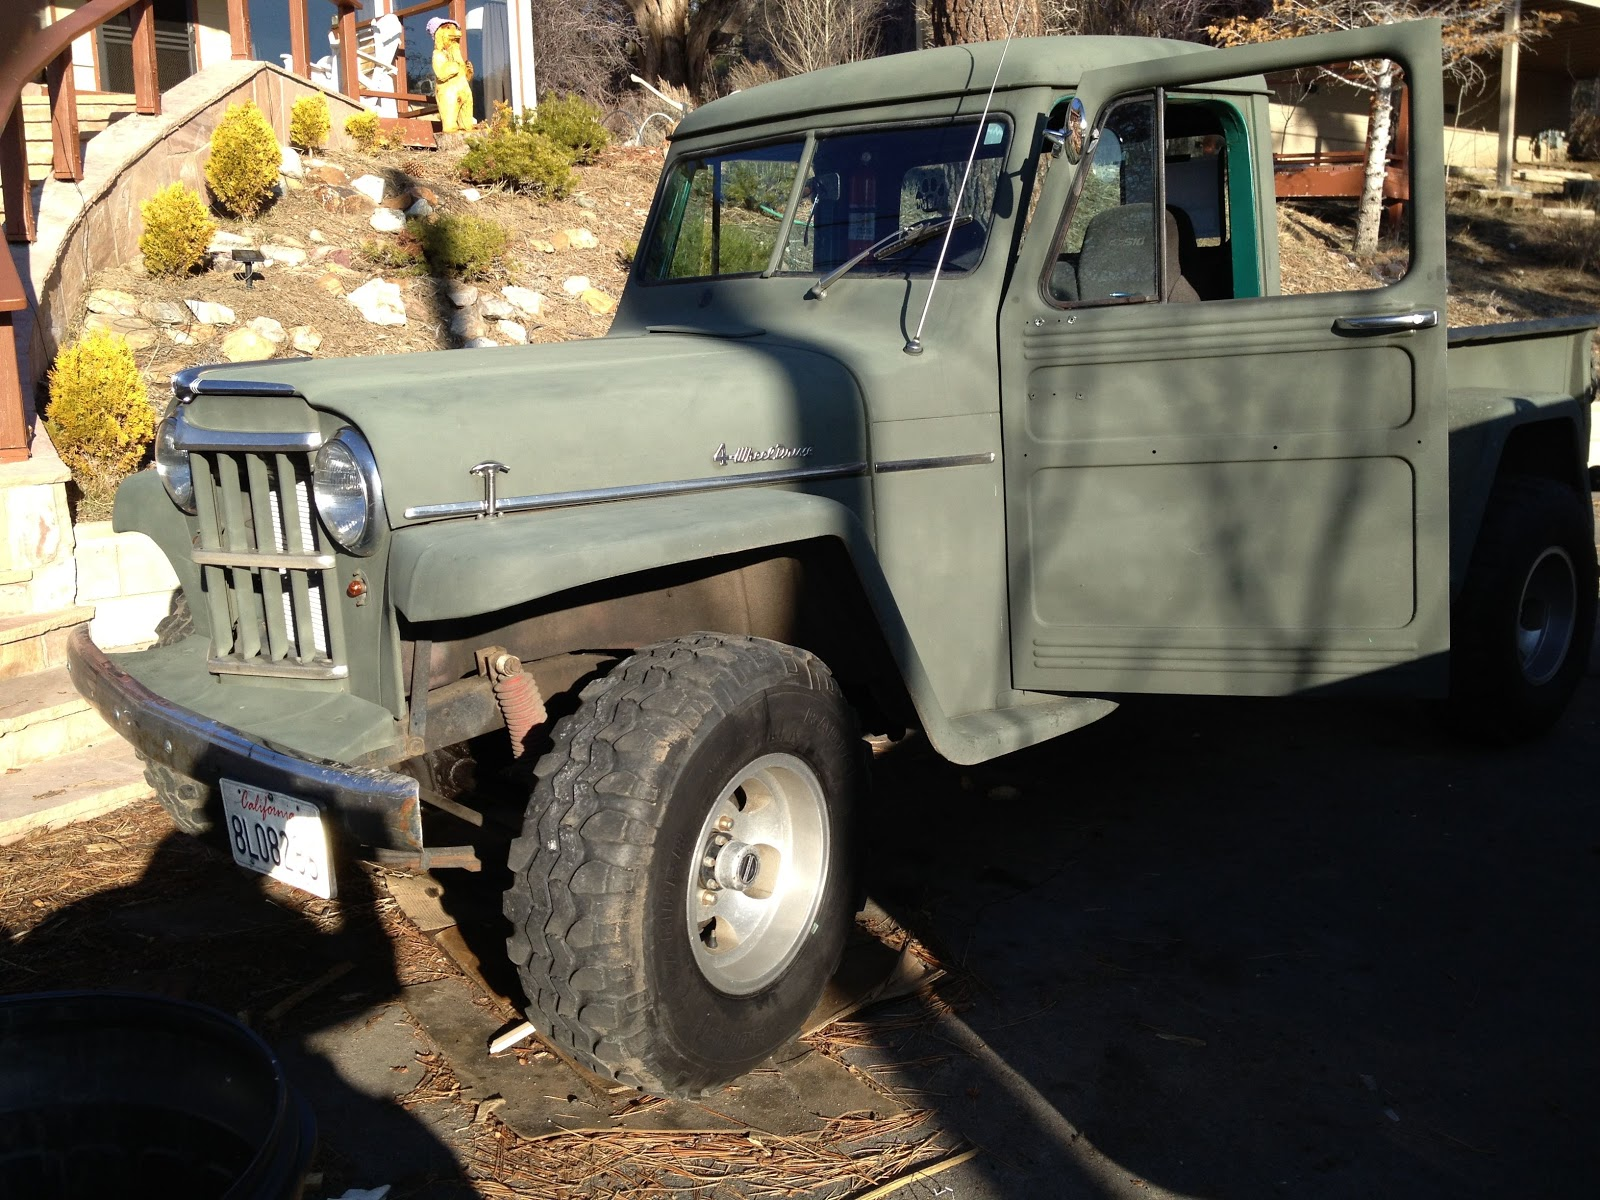 1959 classic willys pick up truck for sale for sale classic 1959 willys 4x4 pickup truck for sale. Black Bedroom Furniture Sets. Home Design Ideas